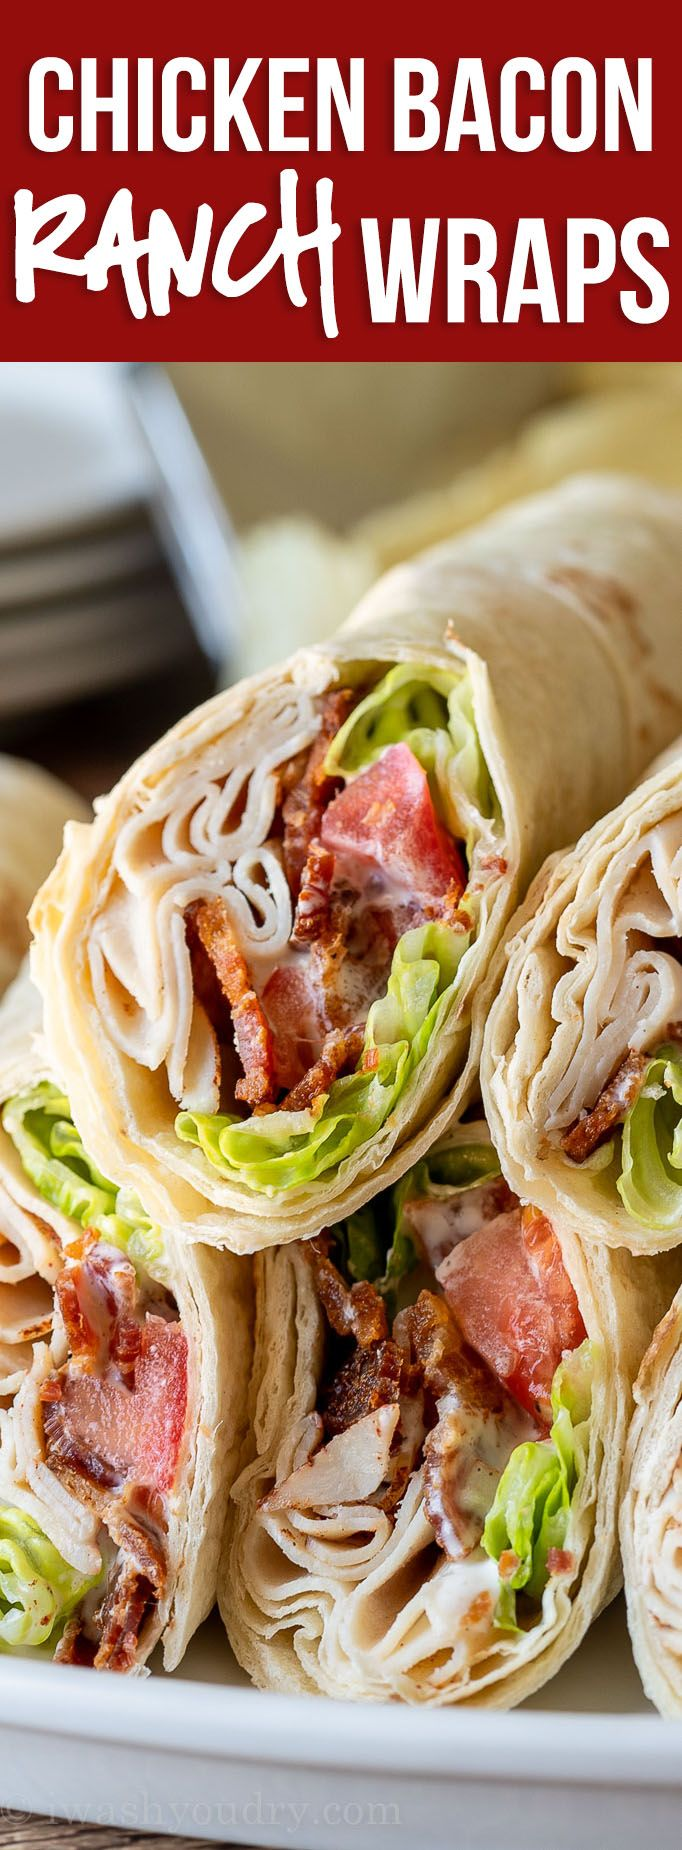 Chicken Bacon Ranch Wraps